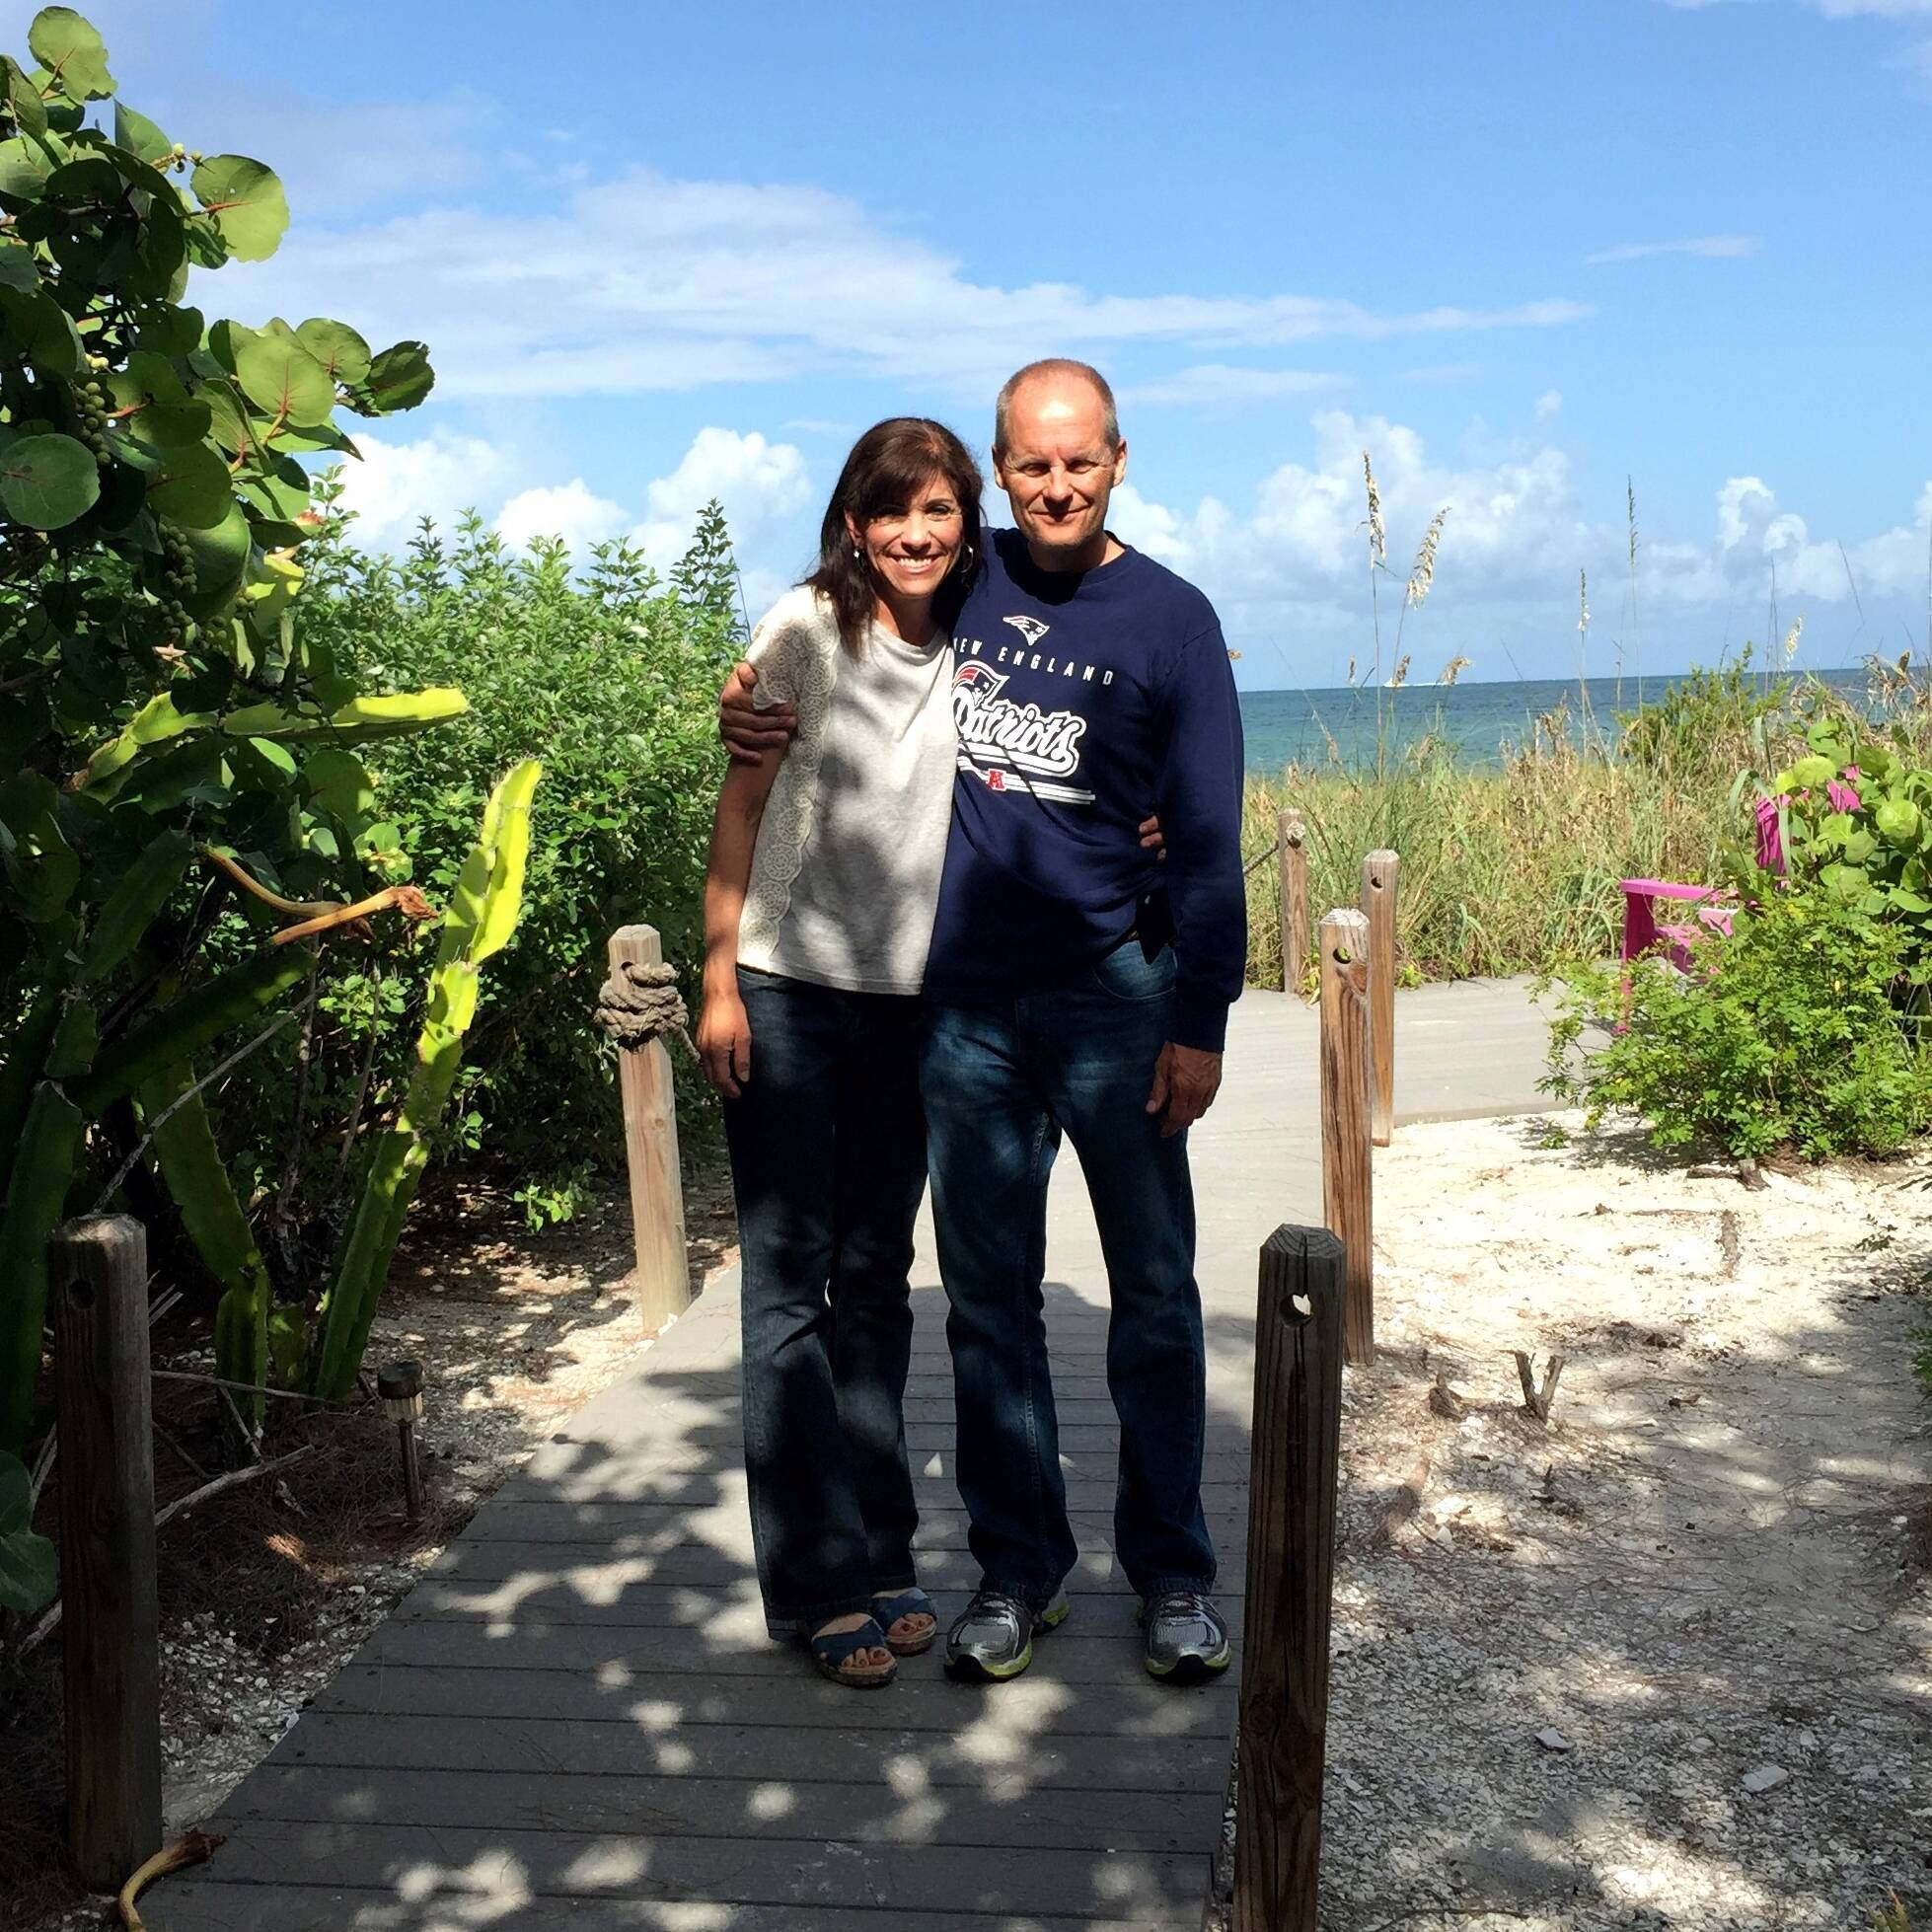 two people standing on path in front of plants and ocean in background